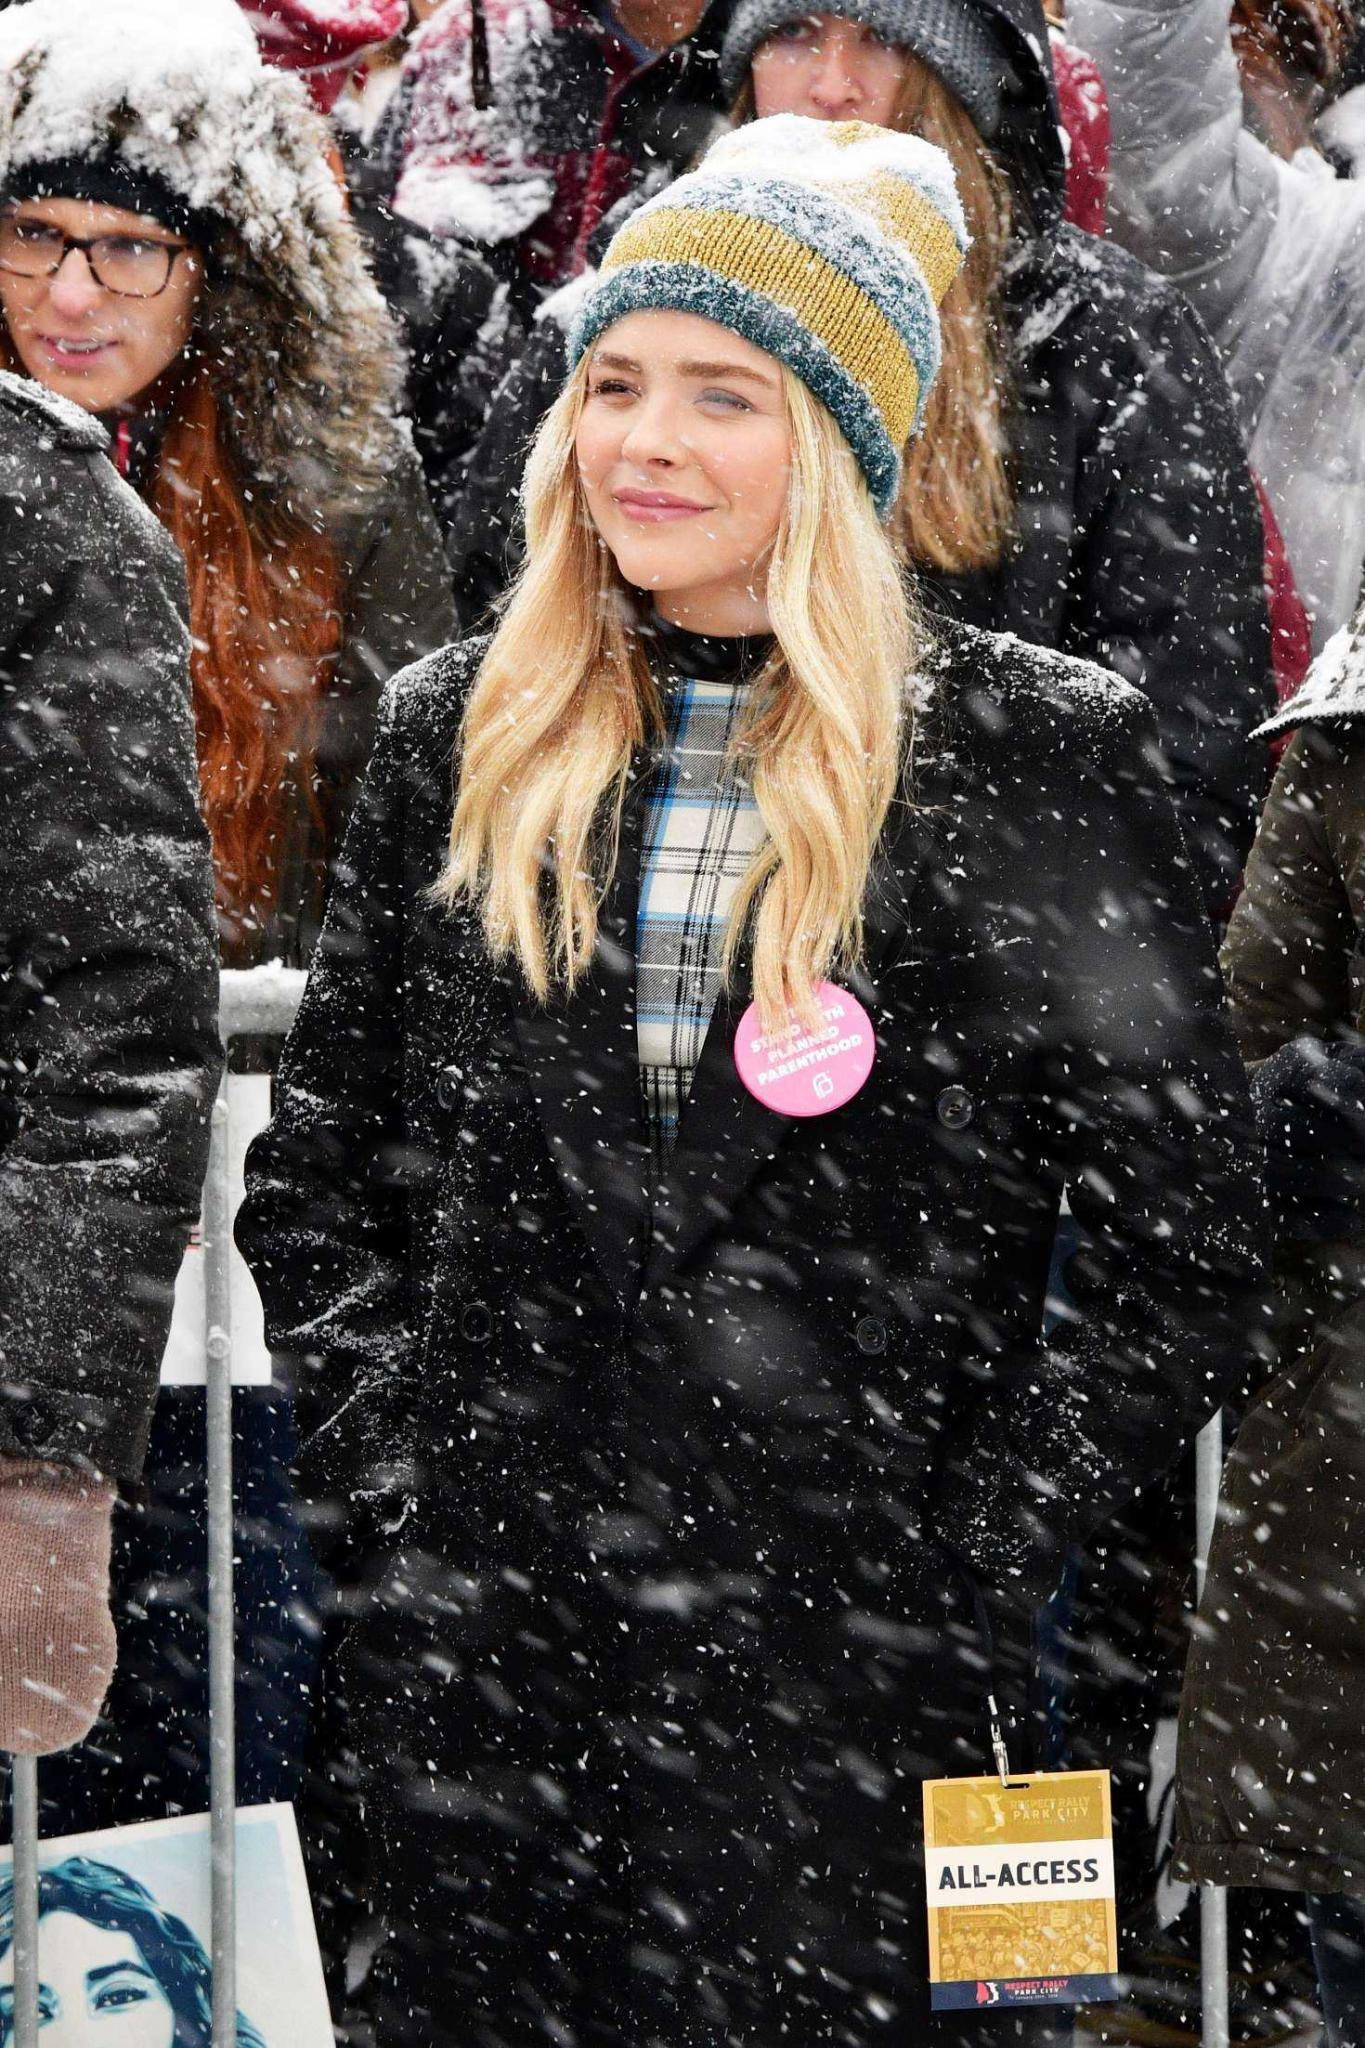 Chloe Moretz at Respect Rally while its Snowing in Park City